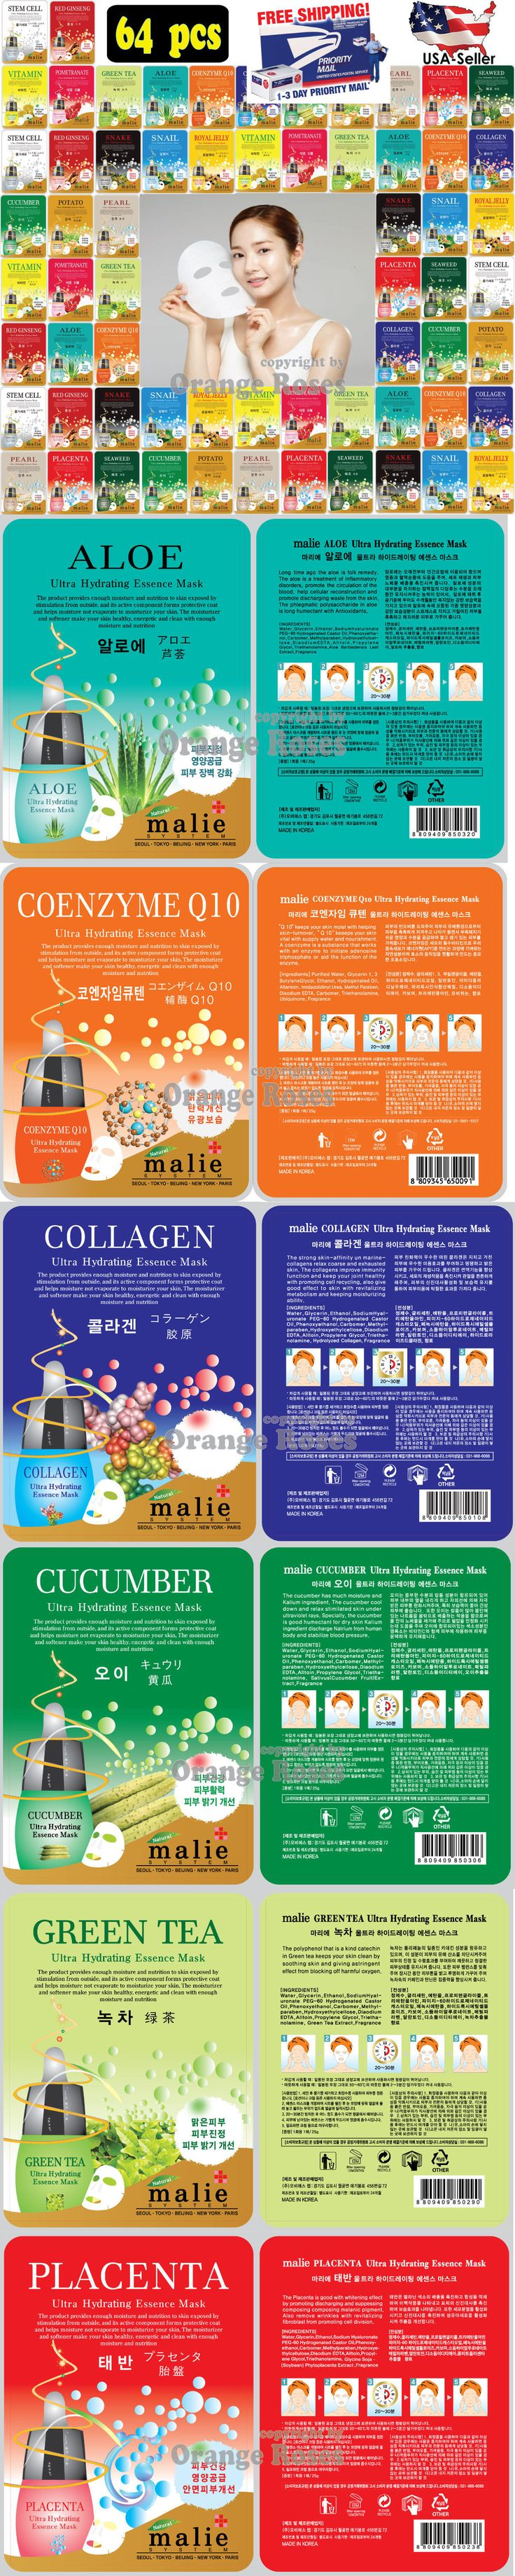 Masks and Peels: [Malie] 64 Pcs Ultra Hydrating Essence Mask Pack, Korean Facial Mask Sheet -> BUY IT NOW ONLY: $31.5 on eBay!